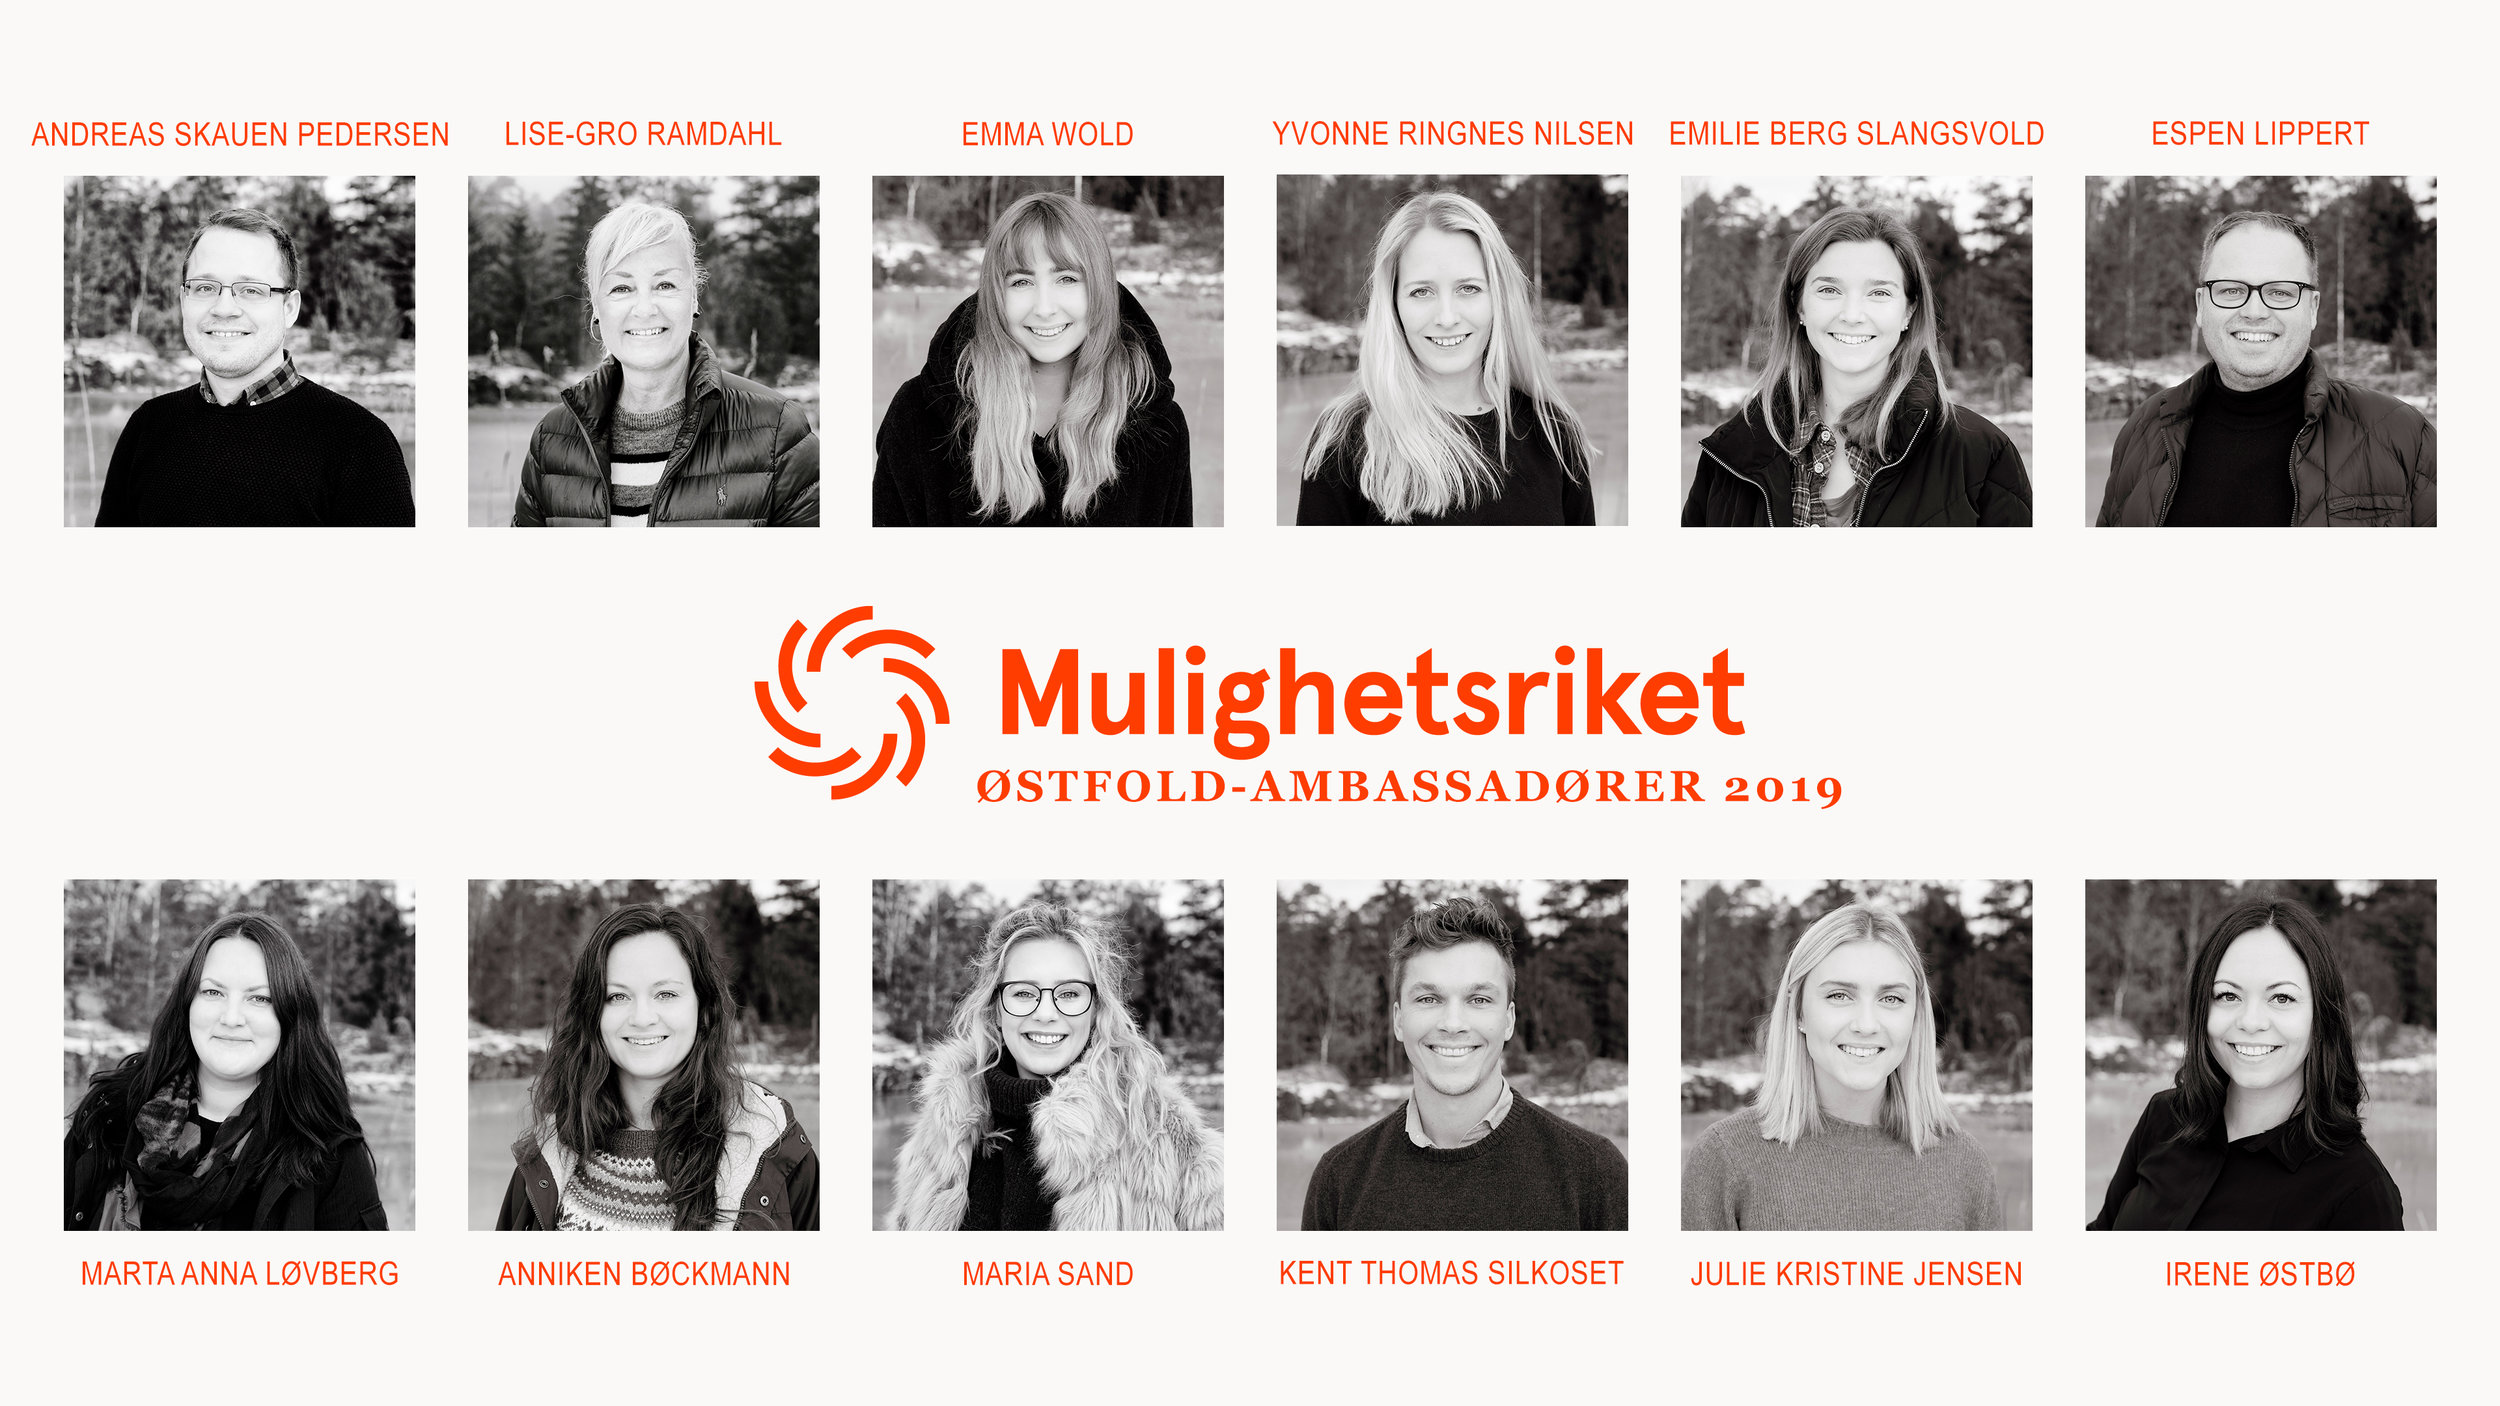 """ Mulighetsriket is working to promote Østfold by strengthening the knowledge of our county, opportunities and the business sector. One of the measures is the ambassador program, where 12 young and committed individuals have the opportunity to set focus on the area they are interested in. This way, they can help bring out the good stories and put Østfold and the business sector more clearly on the map. "" - Mulighetsriket"